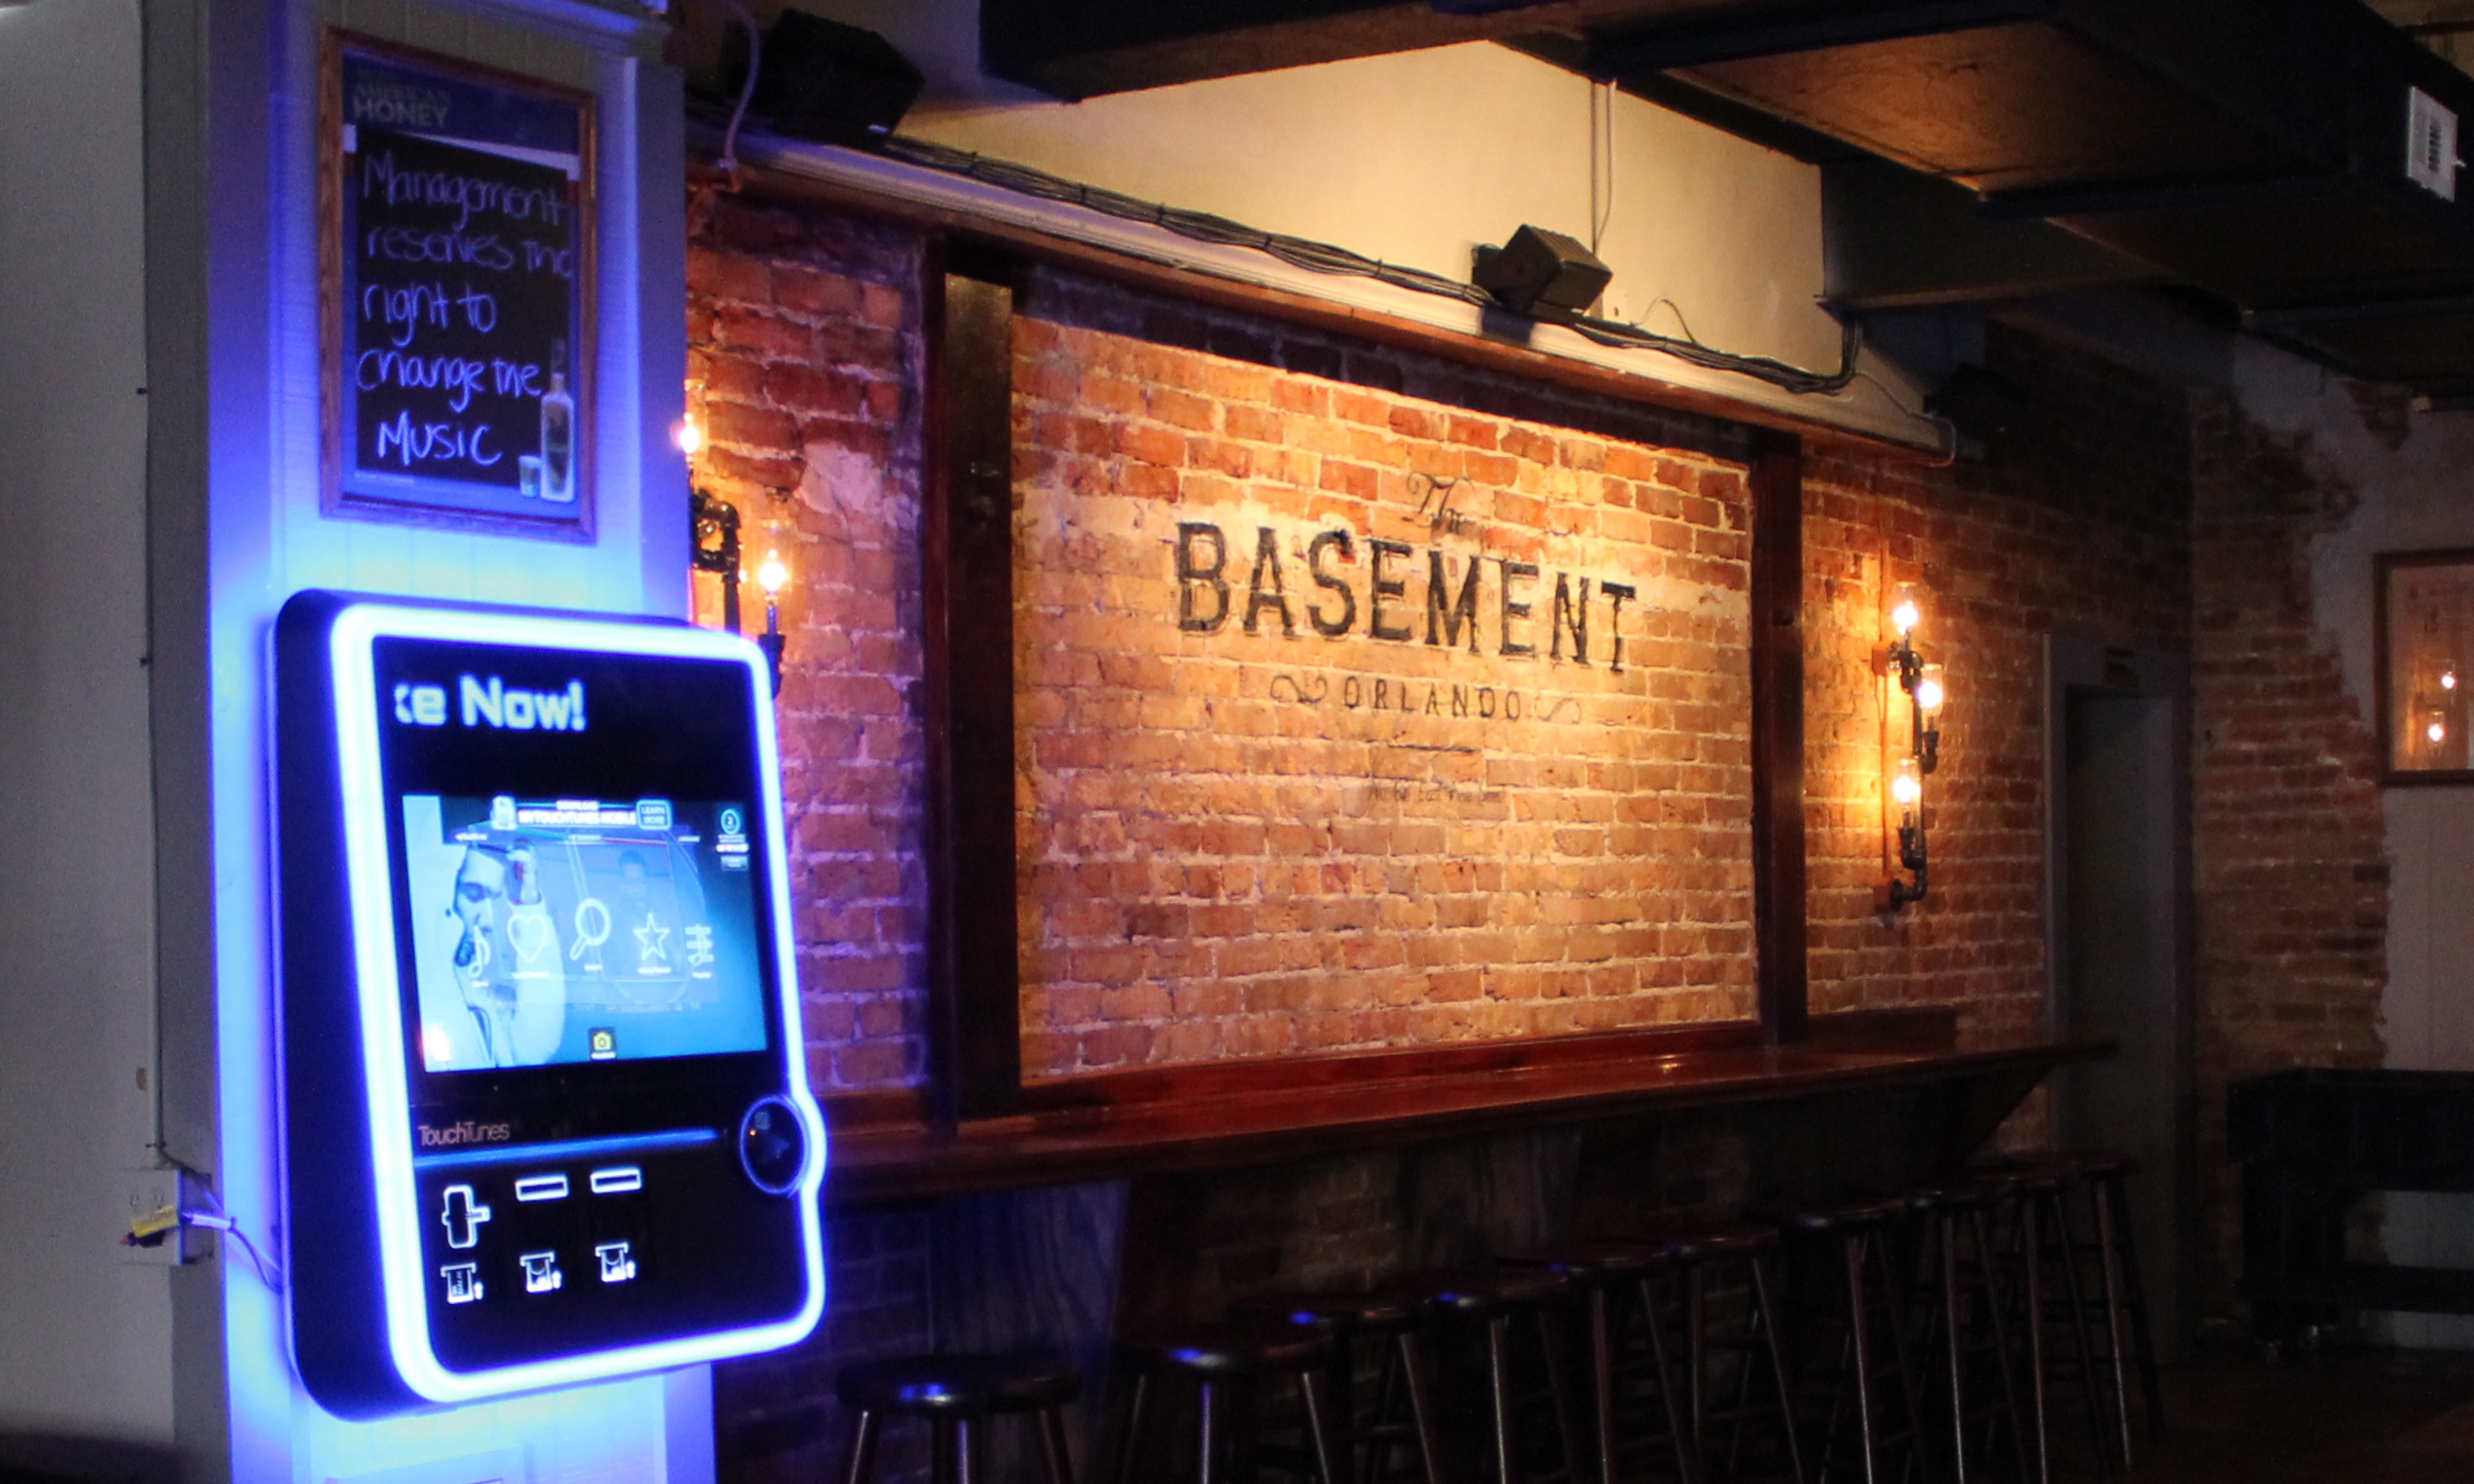 the basement offers touchtunes